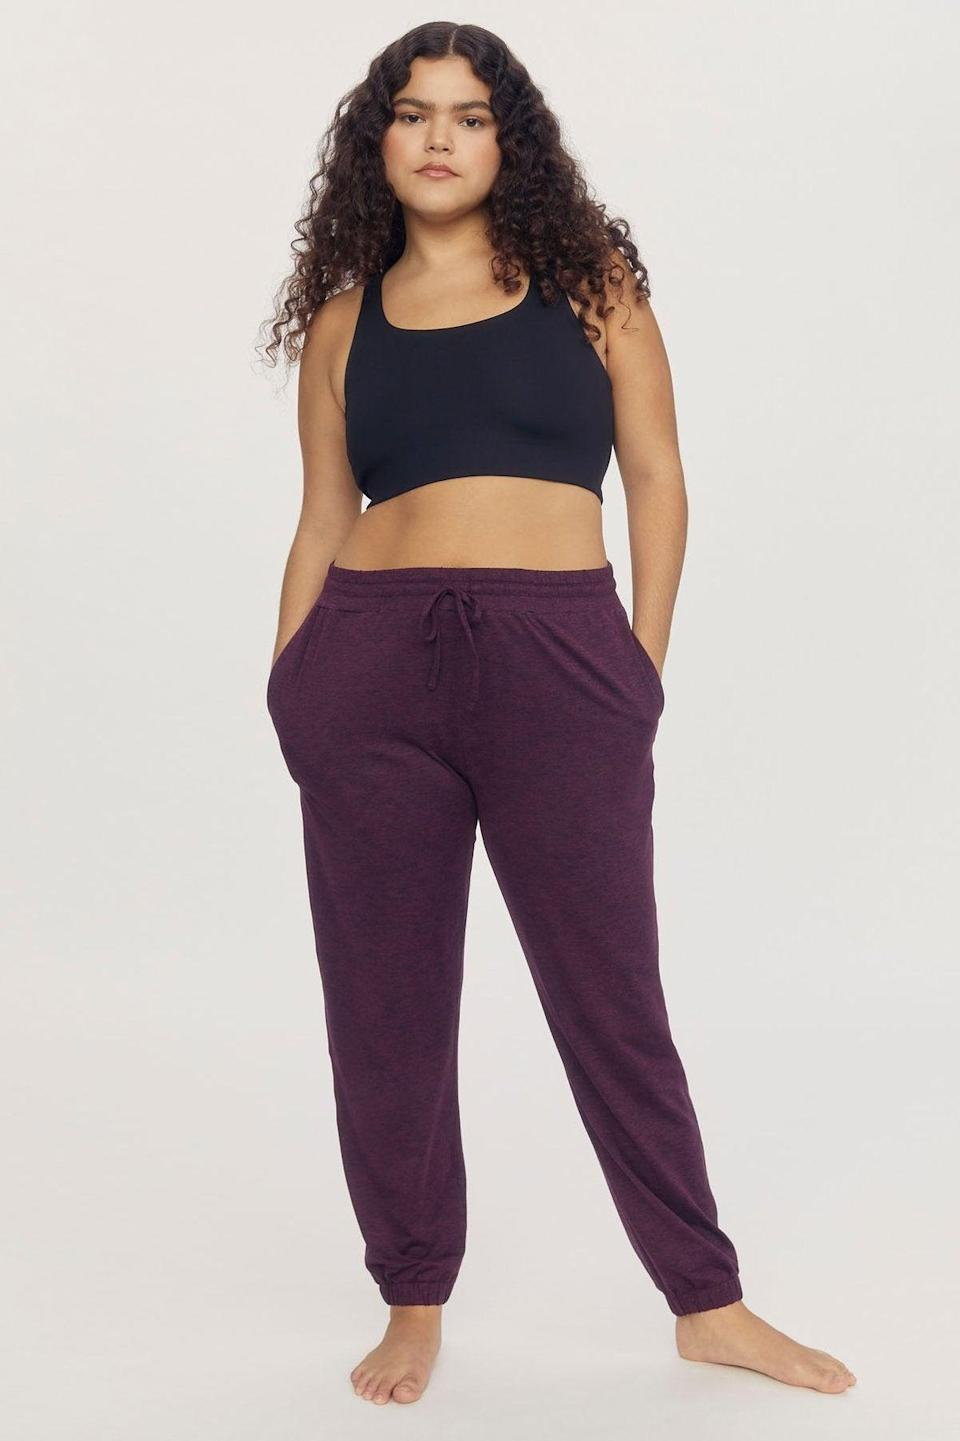 """<br><br><strong>Girlfriend Collective</strong> Plum R&R Jogger, $, available at <a href=""""https://go.skimresources.com/?id=30283X879131&url=https%3A%2F%2Ffave.co%2F3opR9Z3"""" rel=""""nofollow noopener"""" target=""""_blank"""" data-ylk=""""slk:Girlfriend Collective"""" class=""""link rapid-noclick-resp"""">Girlfriend Collective</a>"""